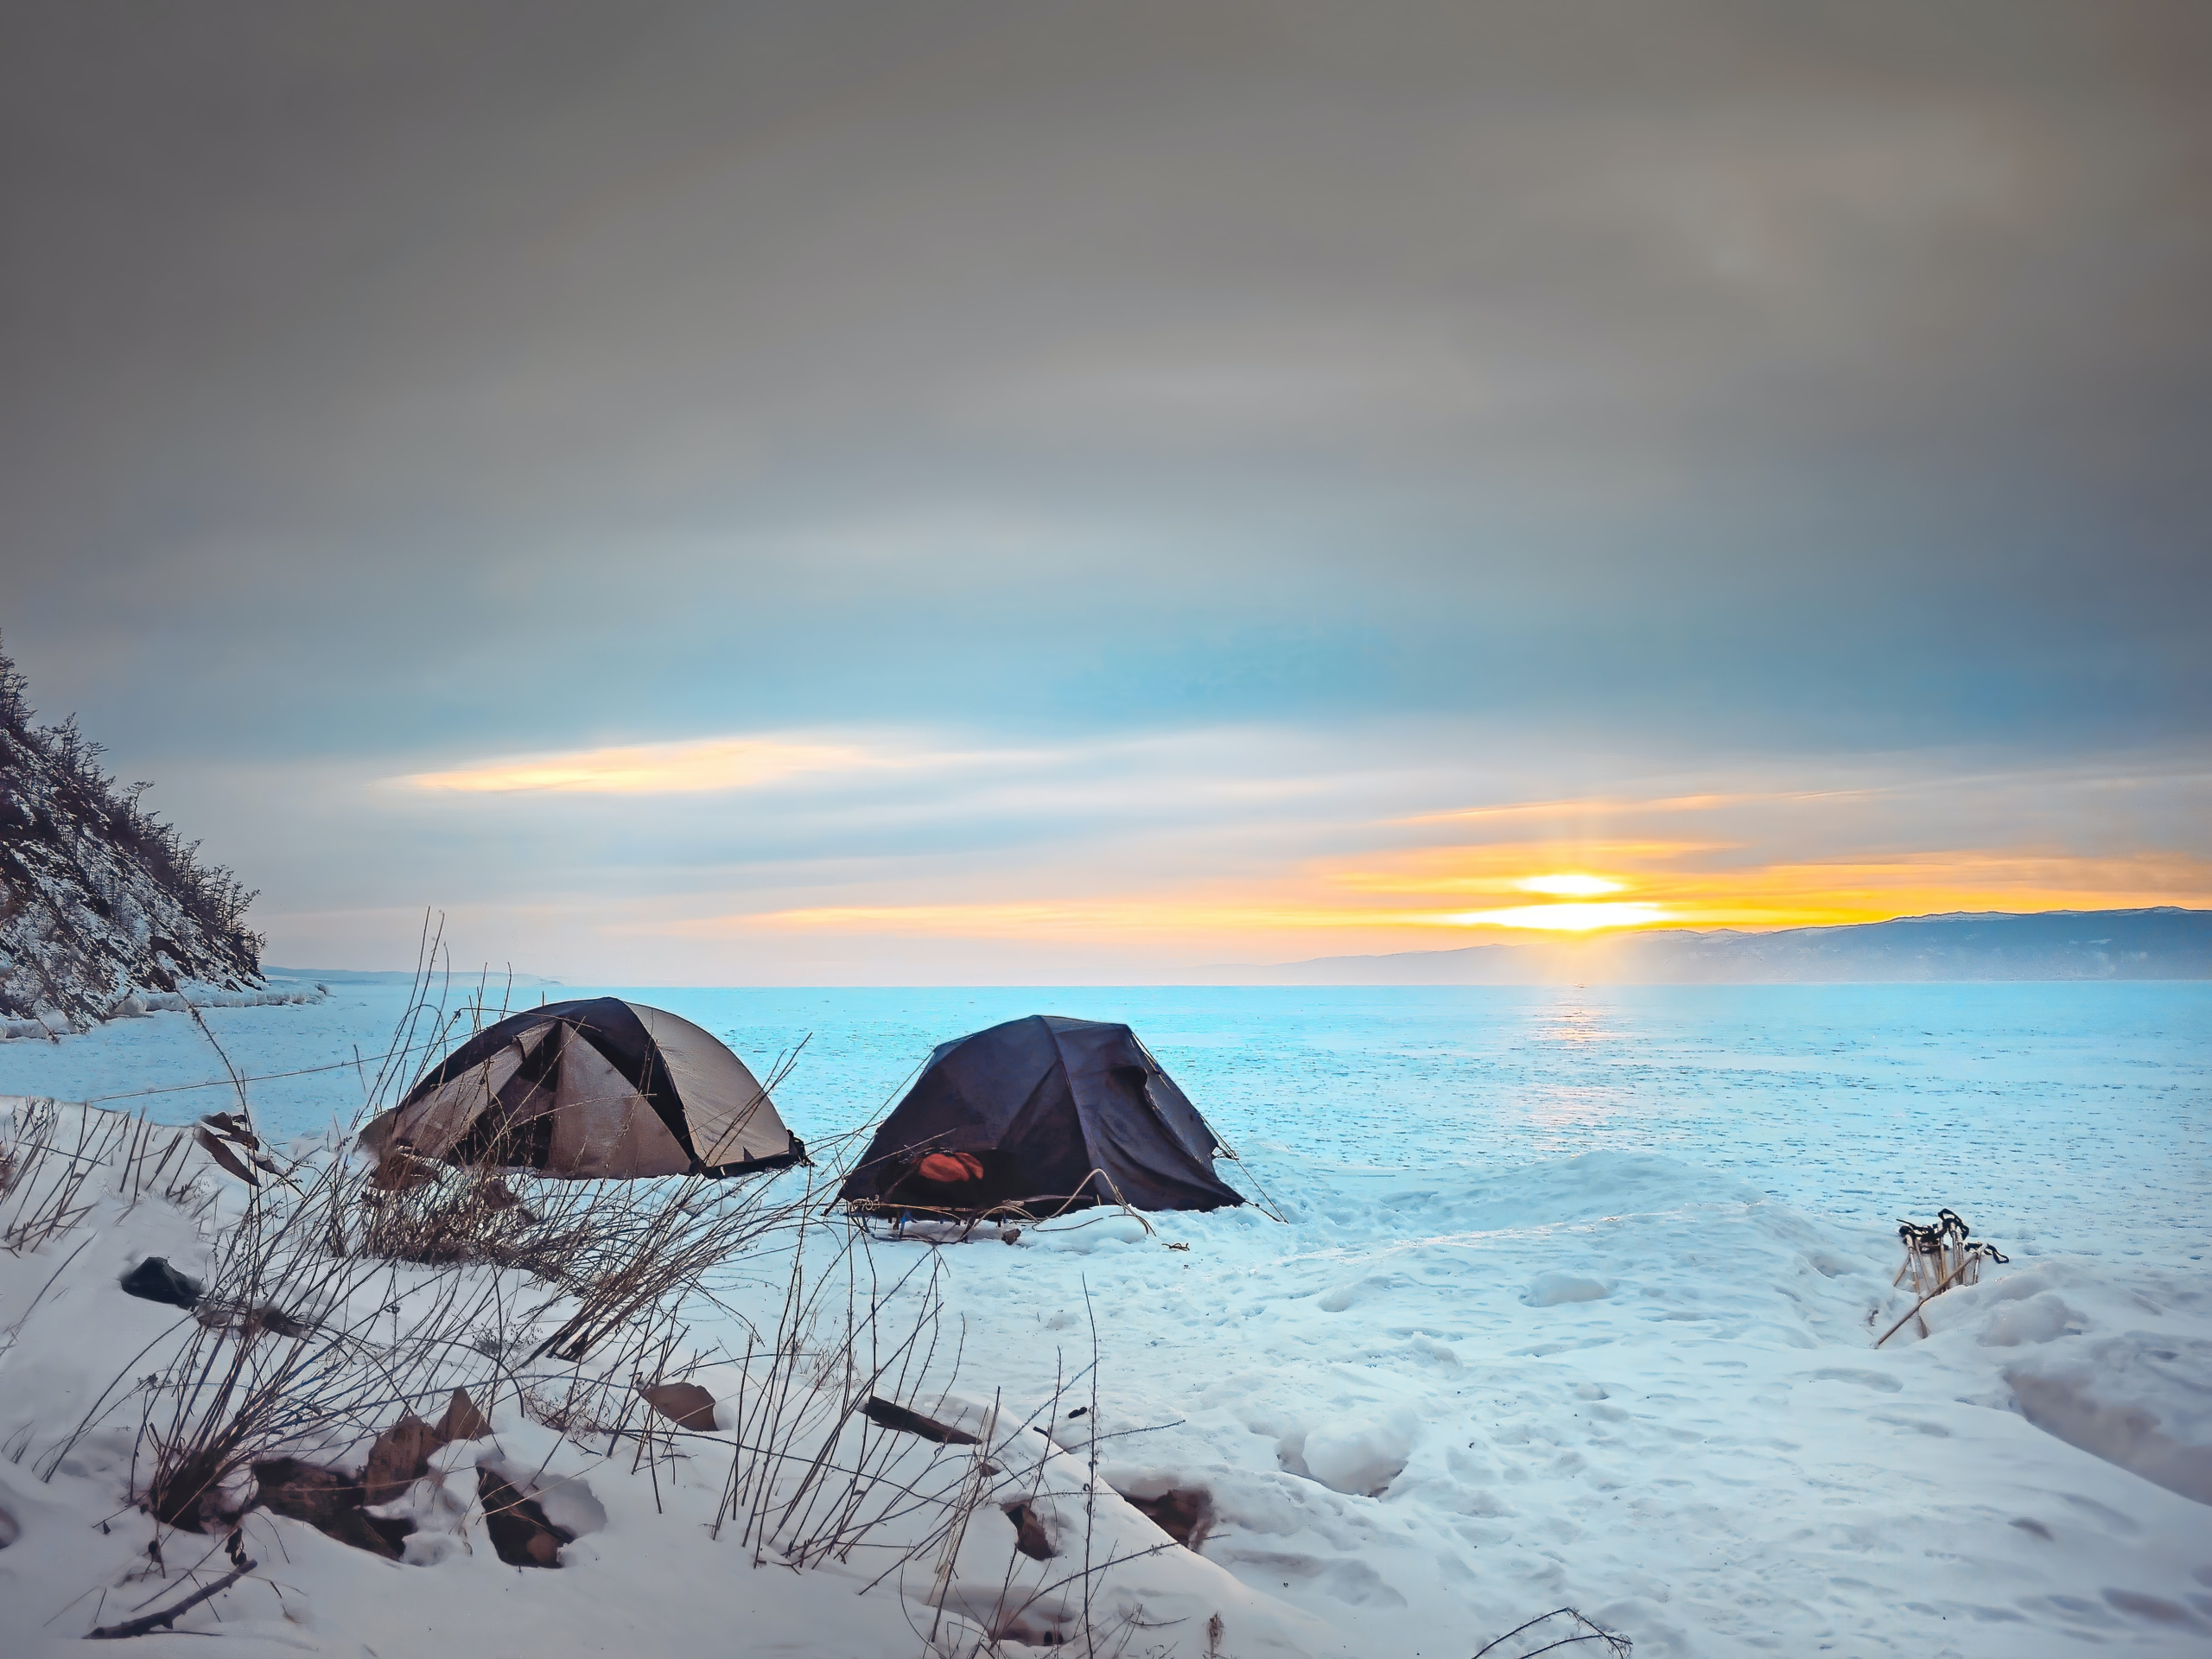 two tents on a snowy plain at sunrise